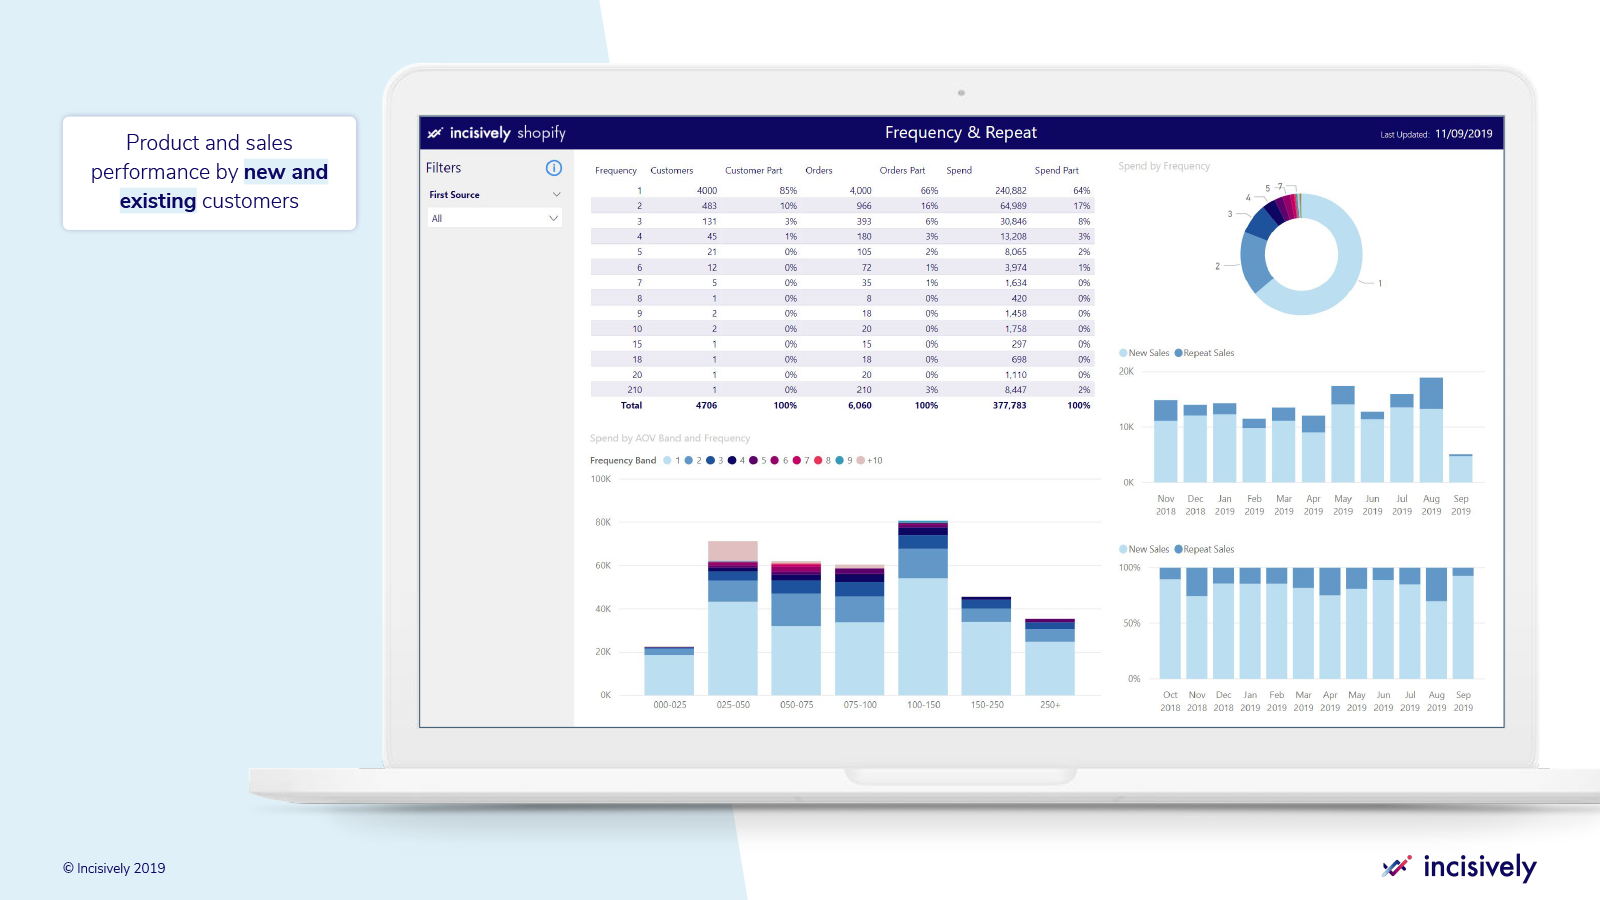 Product and sales performance by new and existing customers